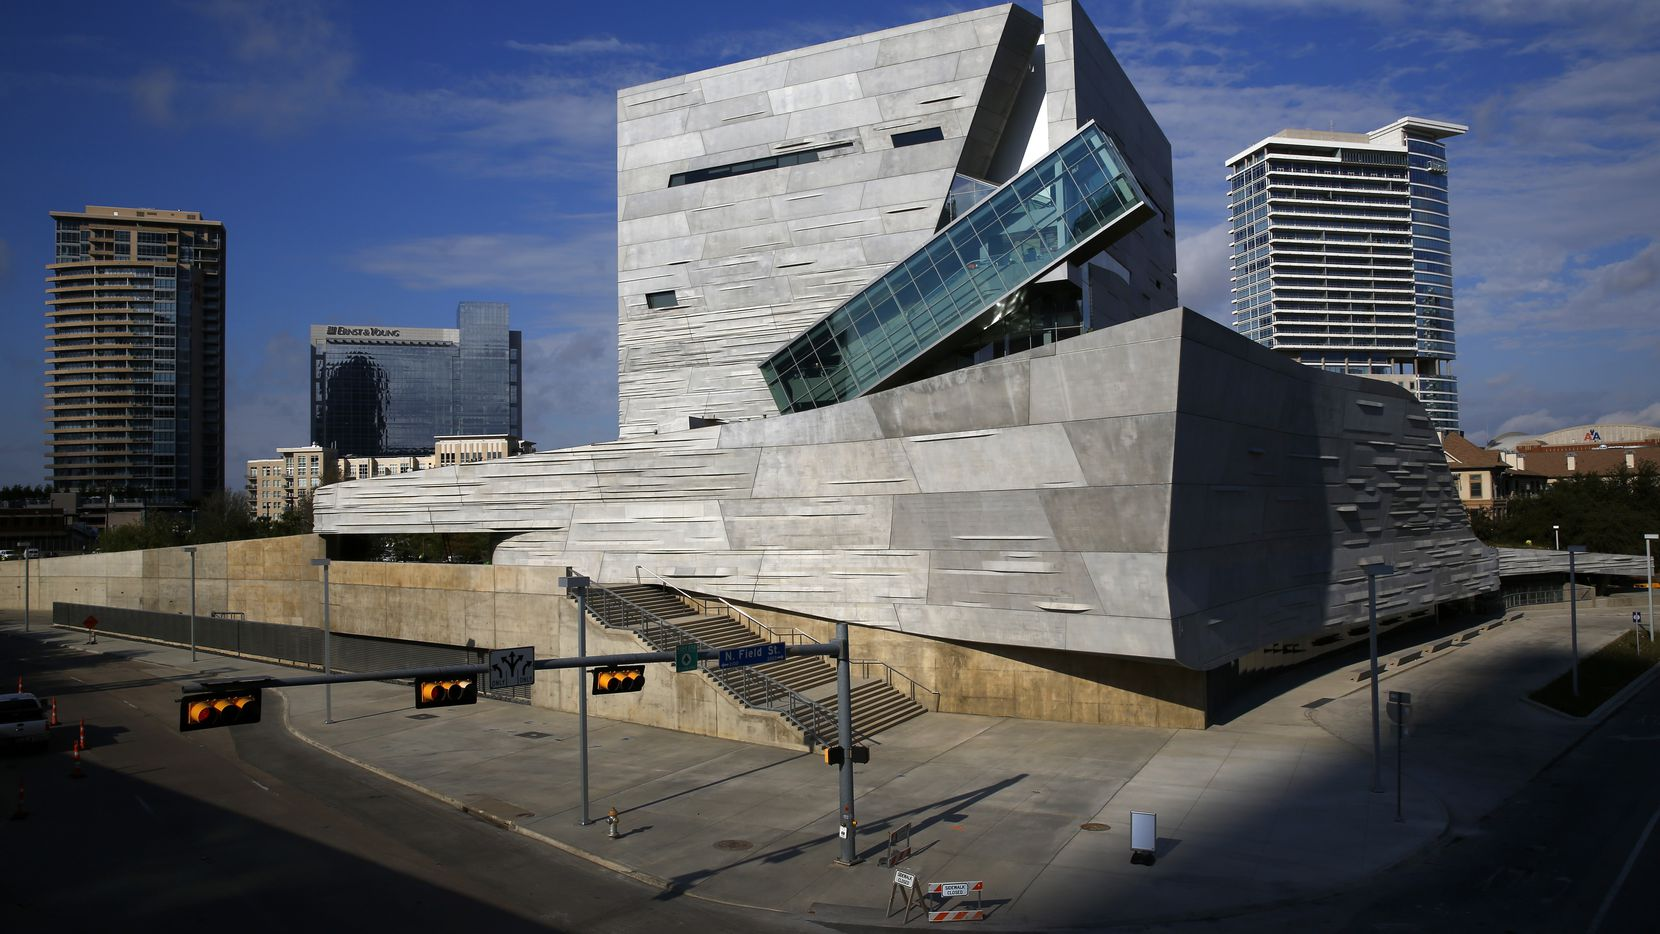 The Perot Museum of Nature and Science in downtown Dallas, Thursday, October 25, 2012.